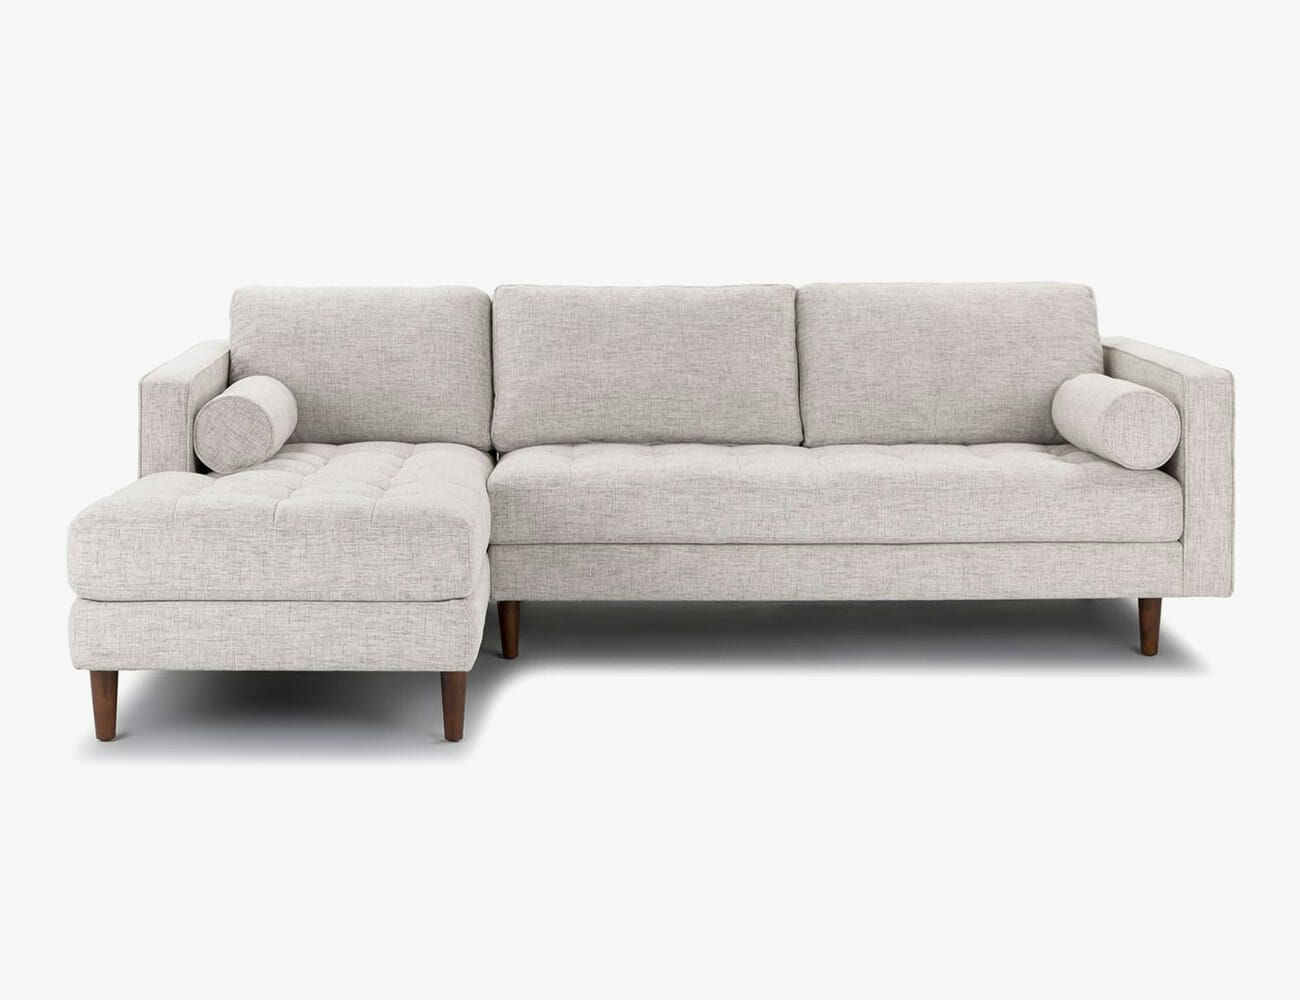 The 16 Best Sofas and Couches You Can Buy in 2019 - Gear Patrol